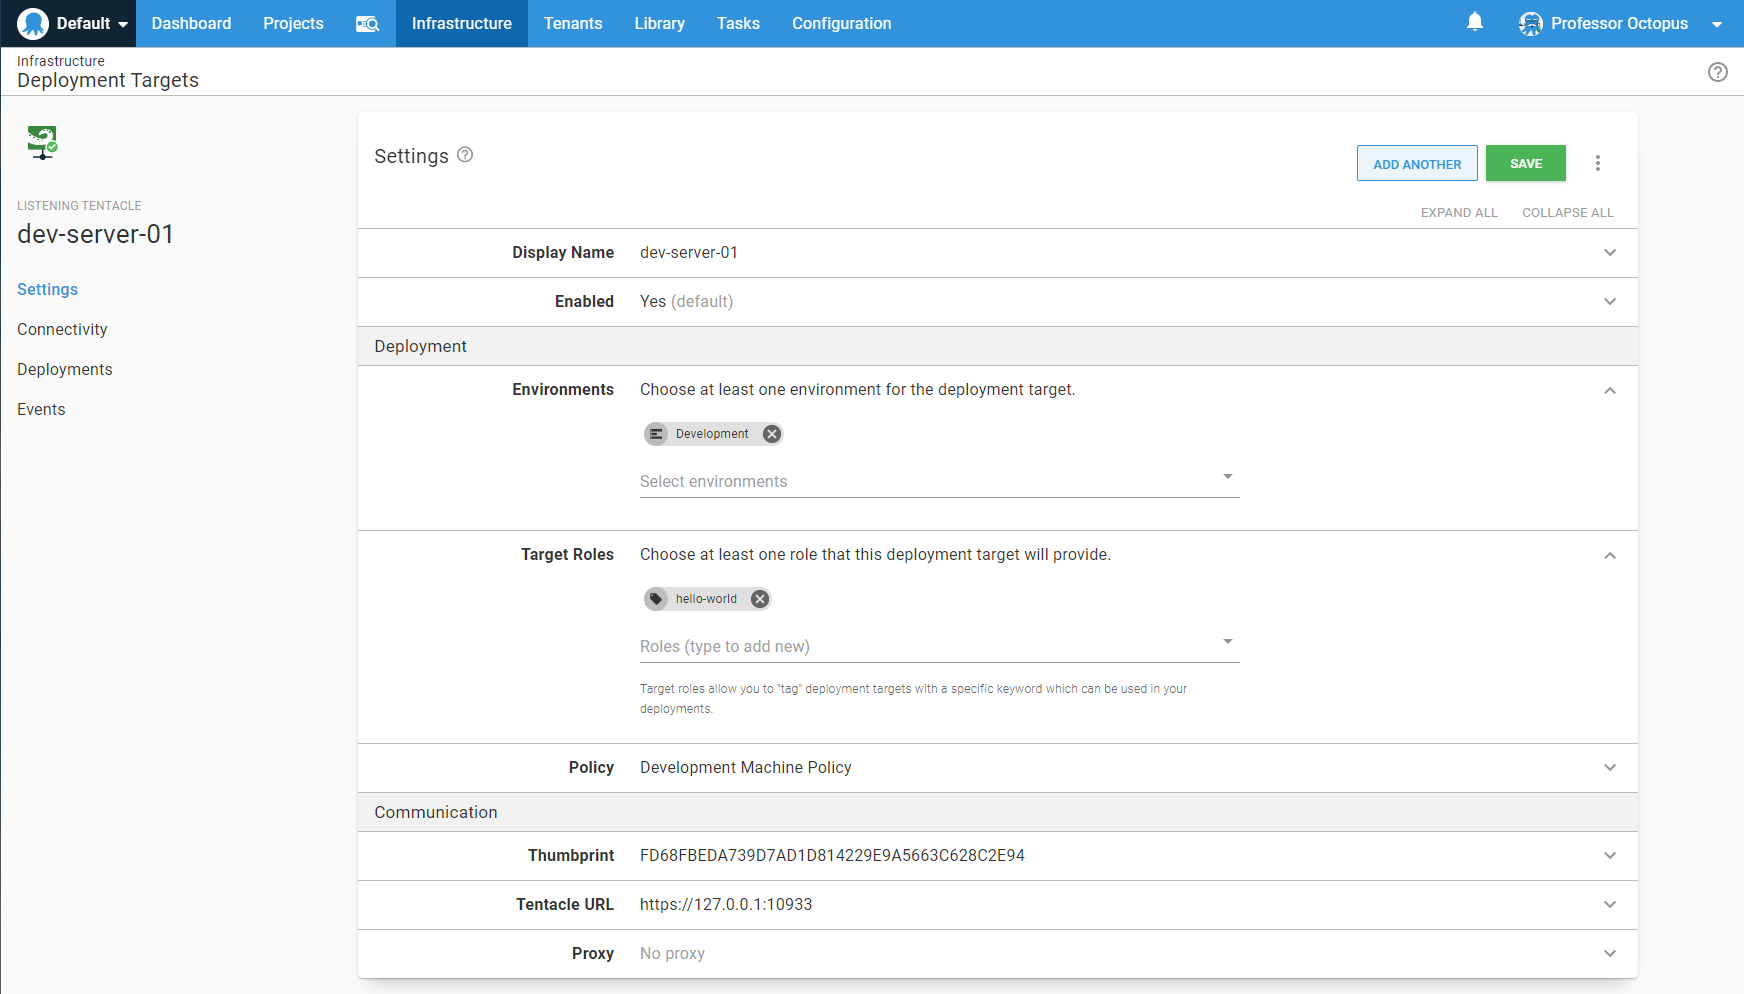 Deployment target with roles